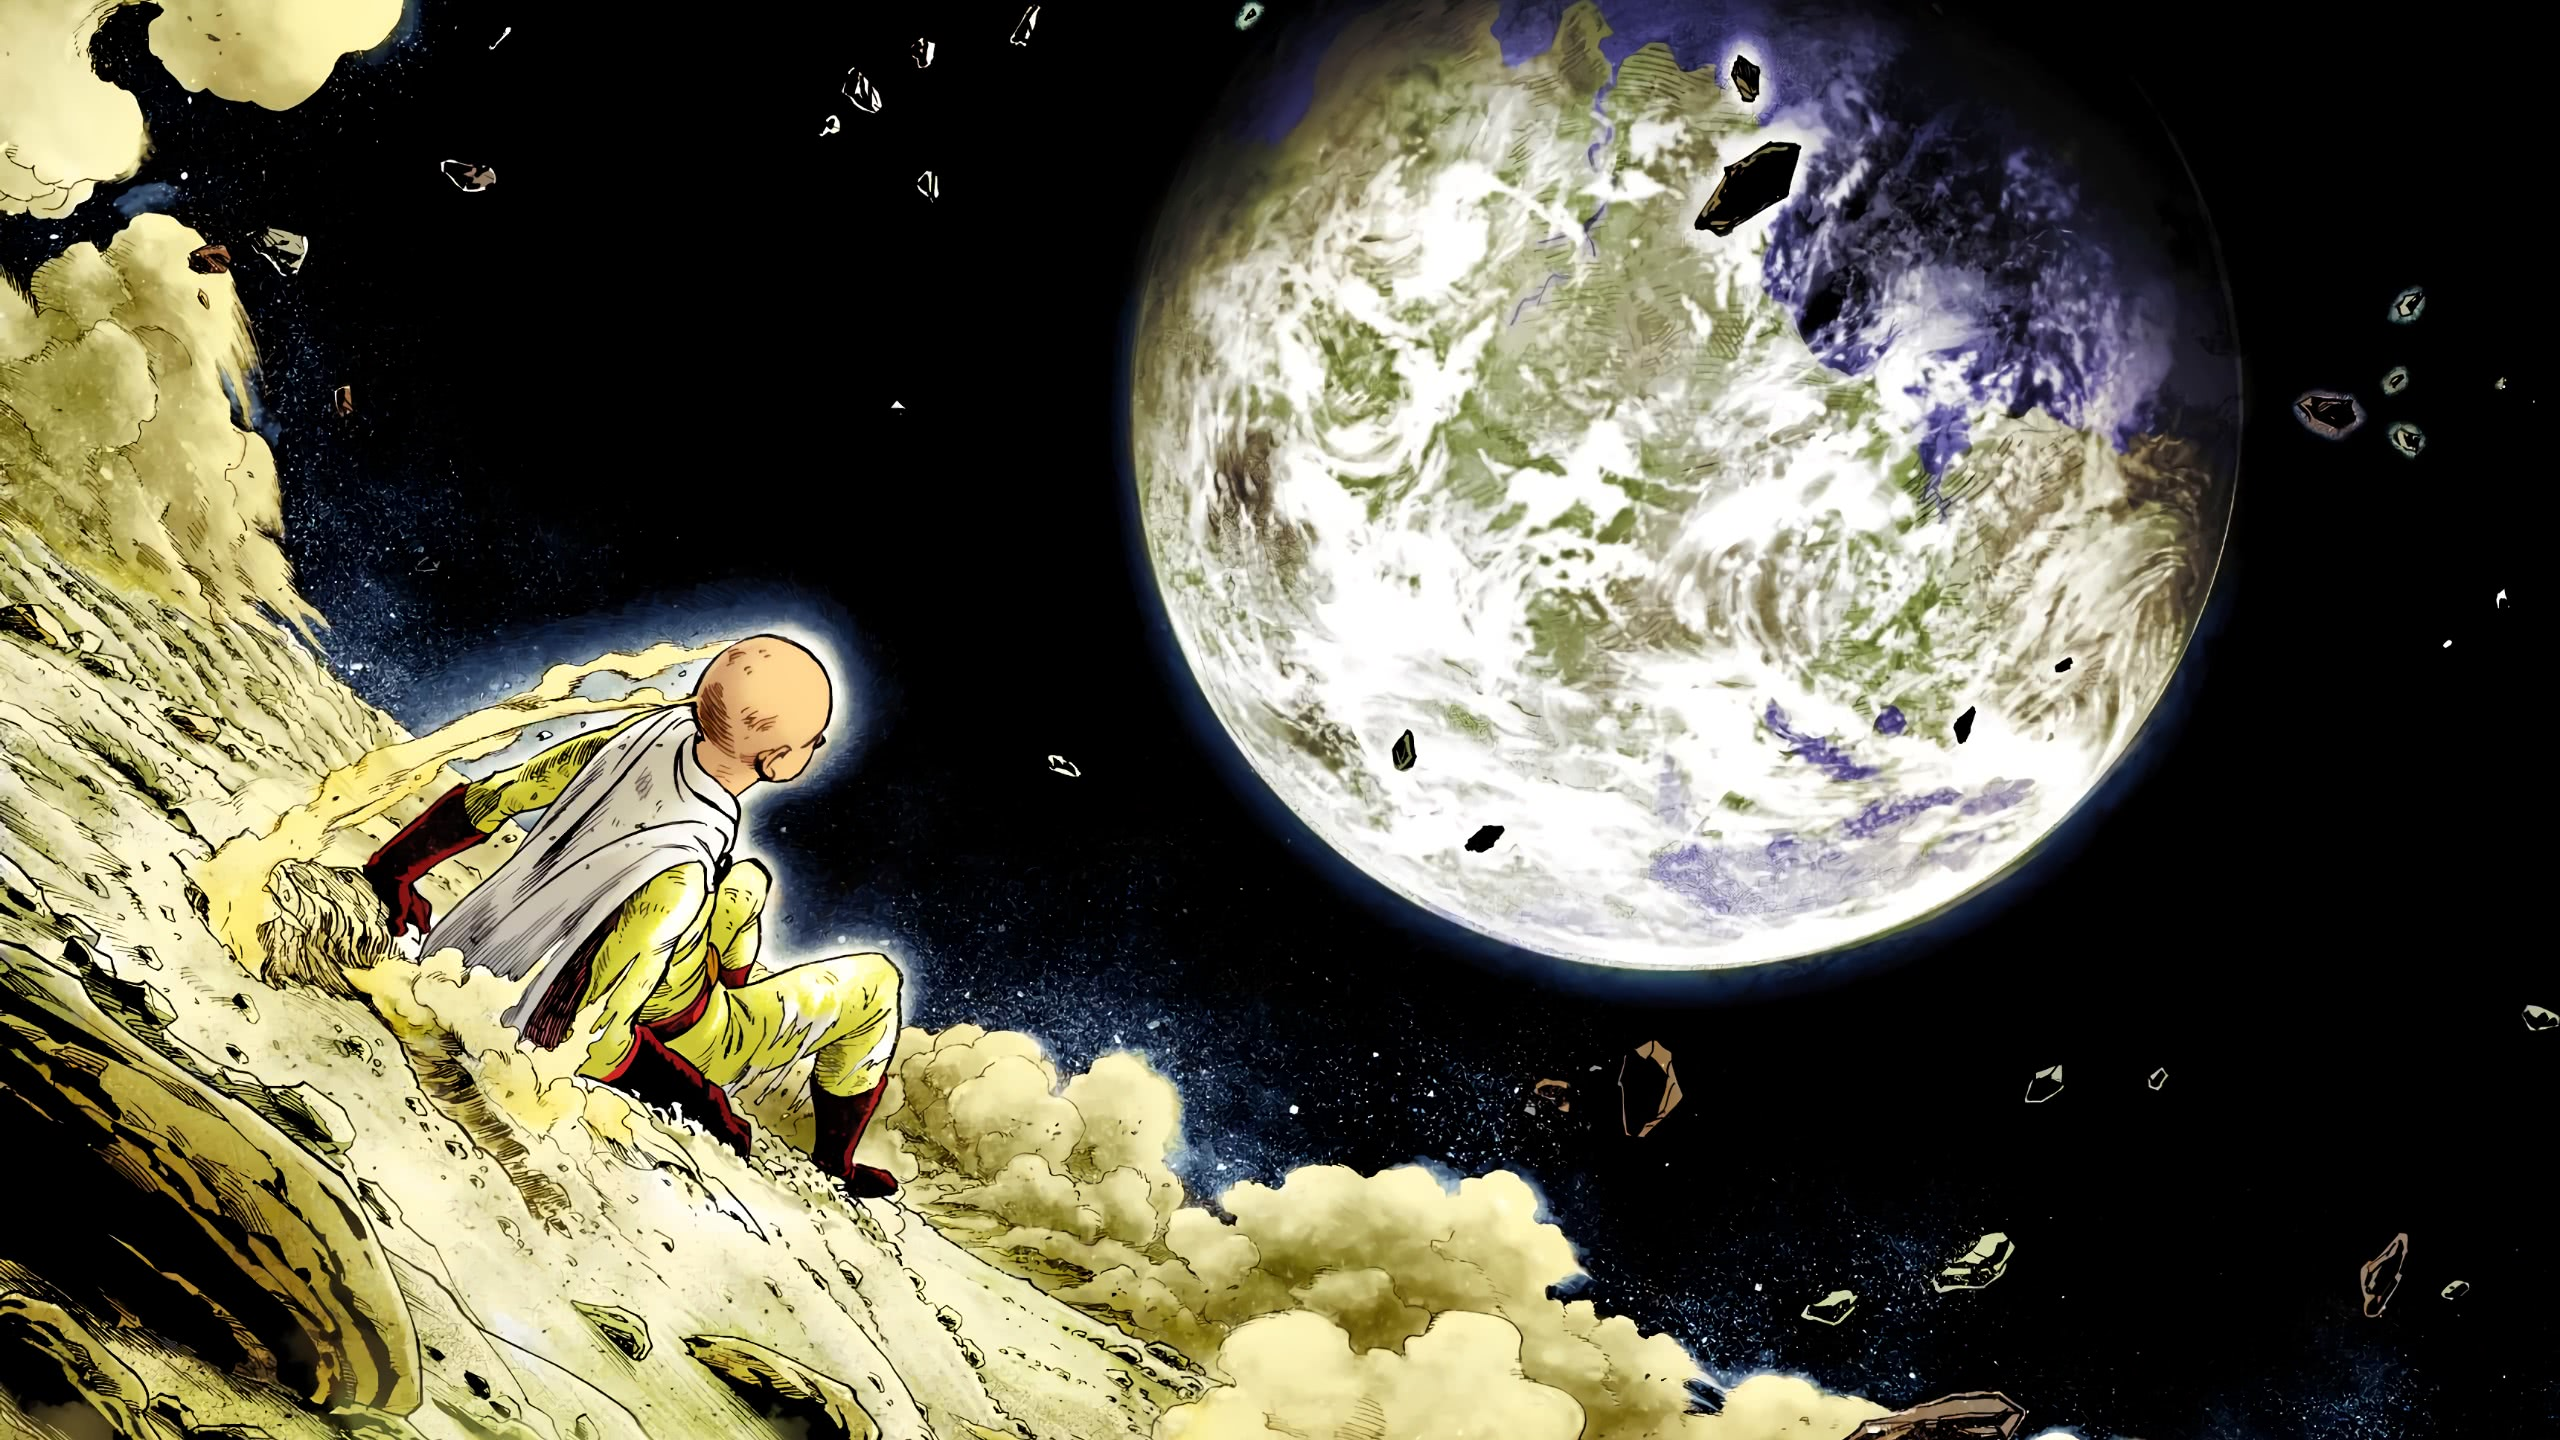 Download Saitama Moon Wallpaper Cikimm Com